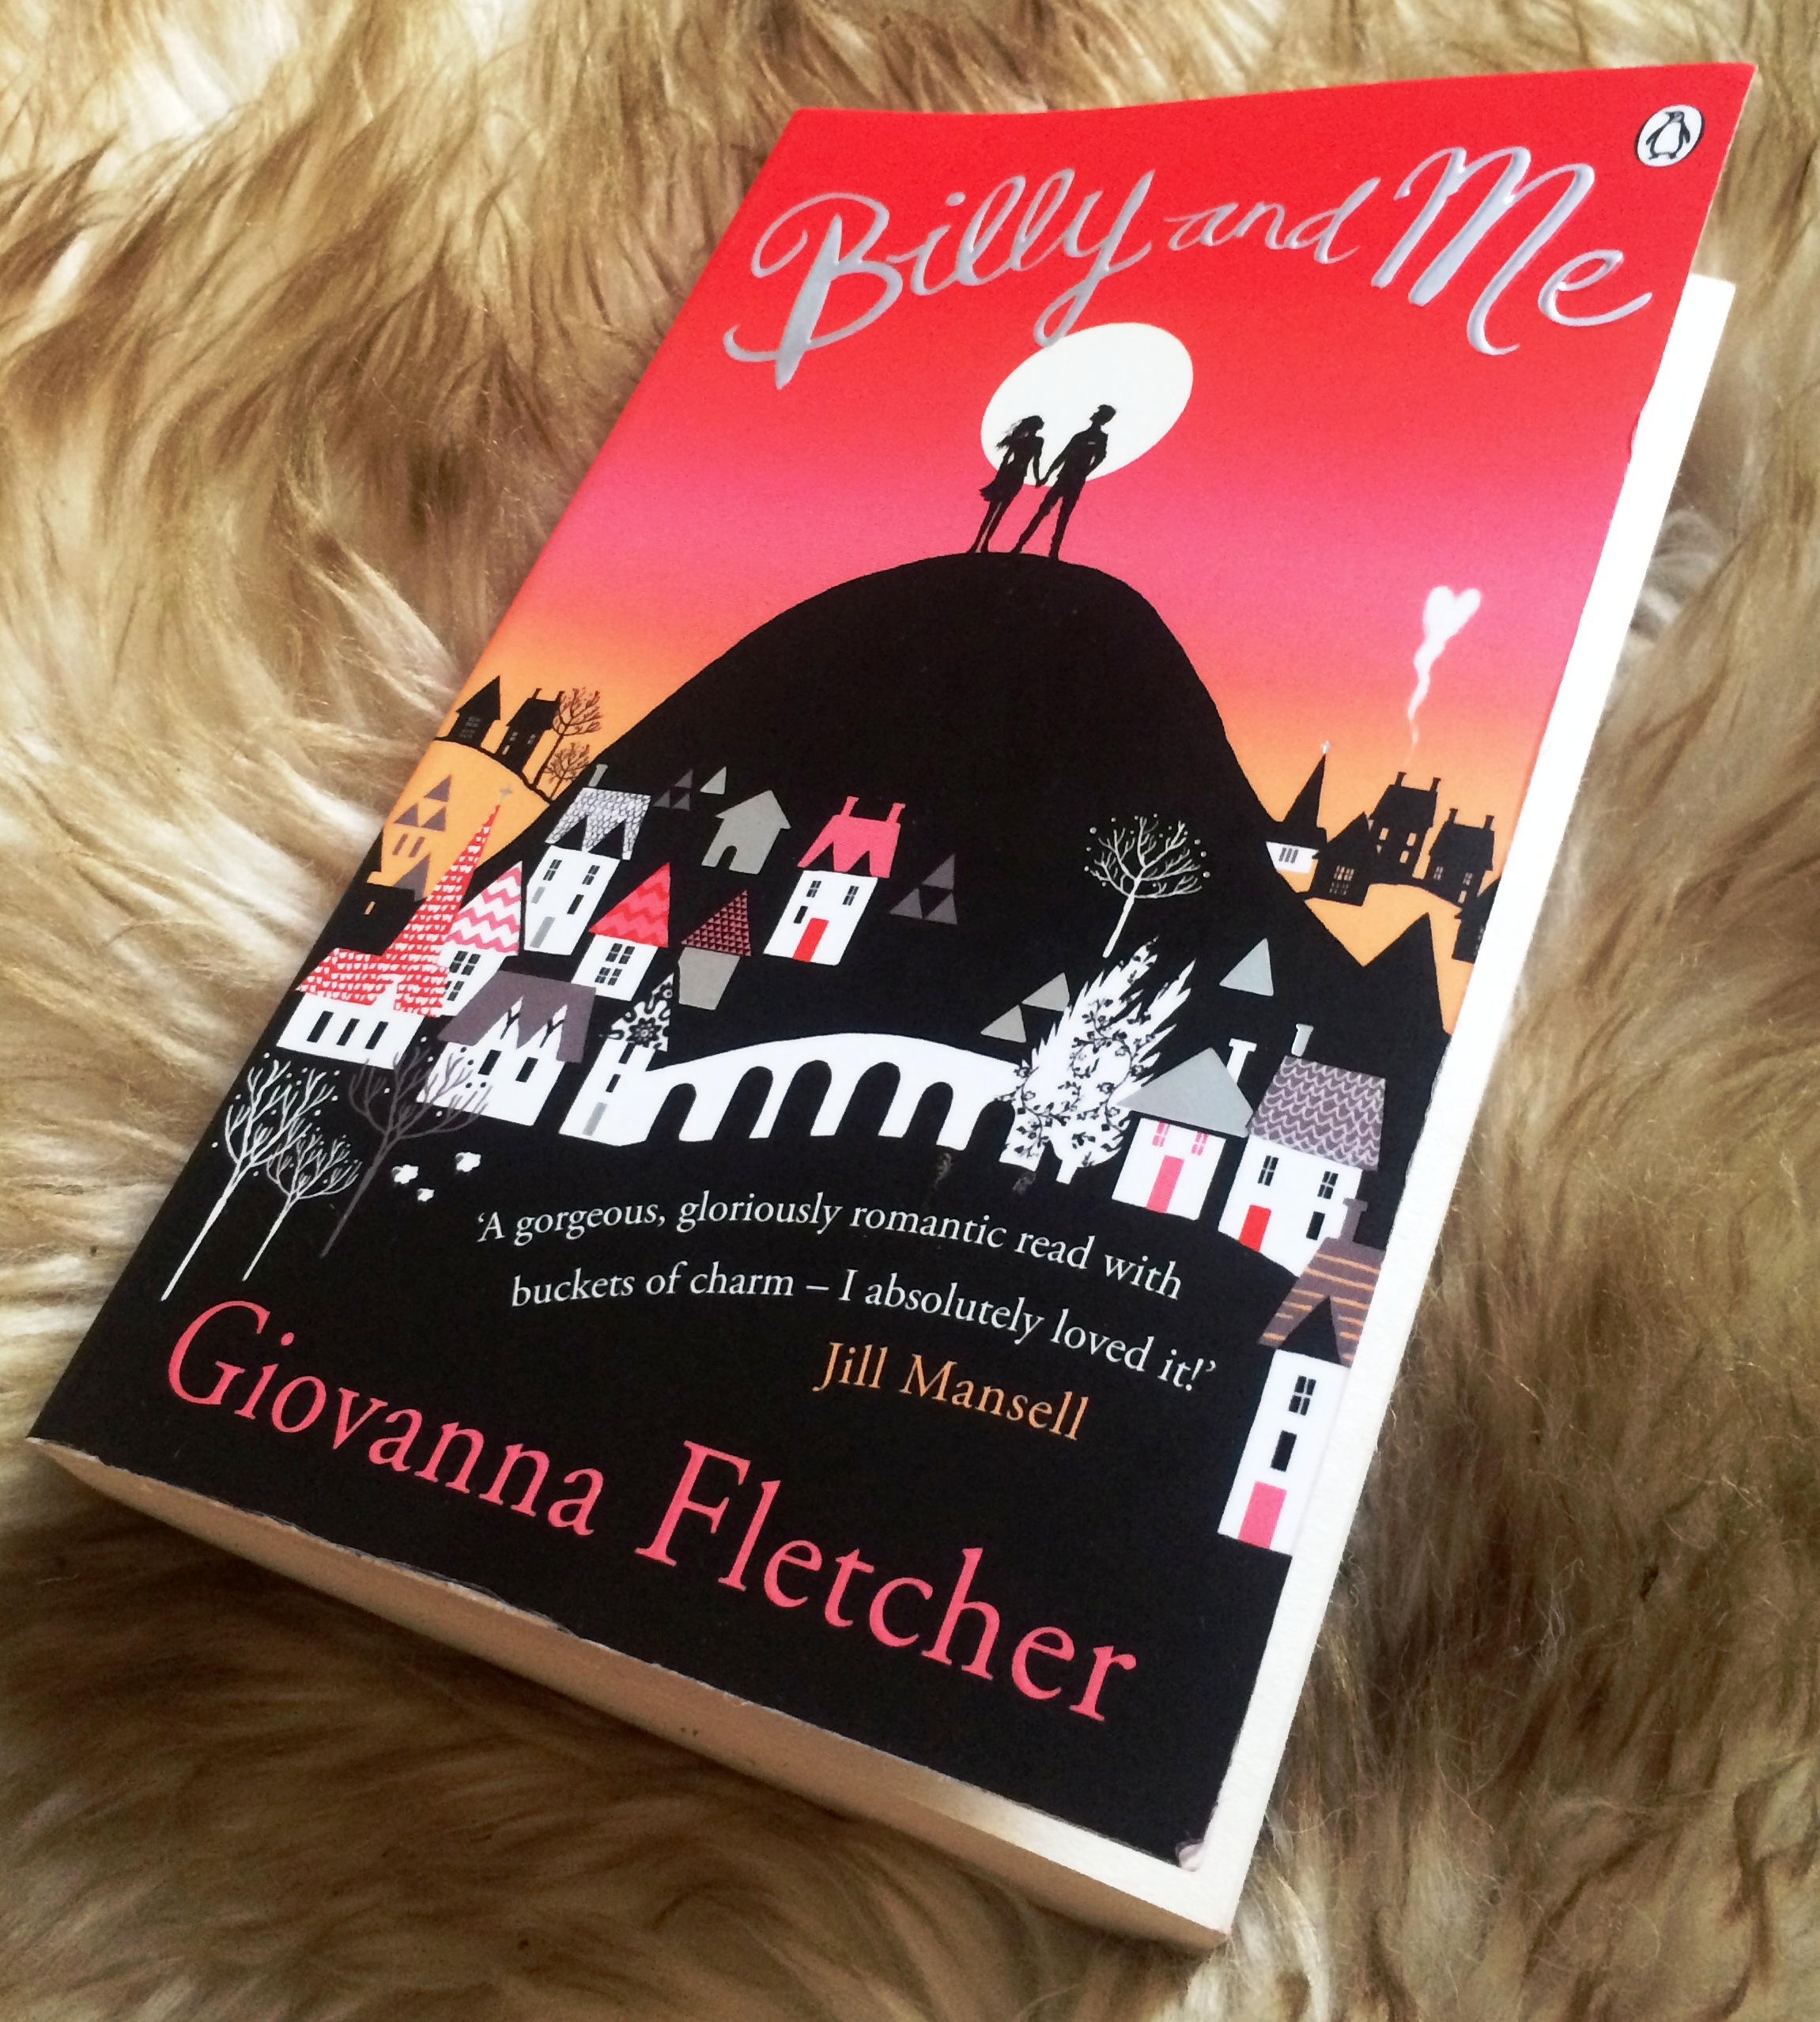 Billy and Me by Giovanna Fletcher